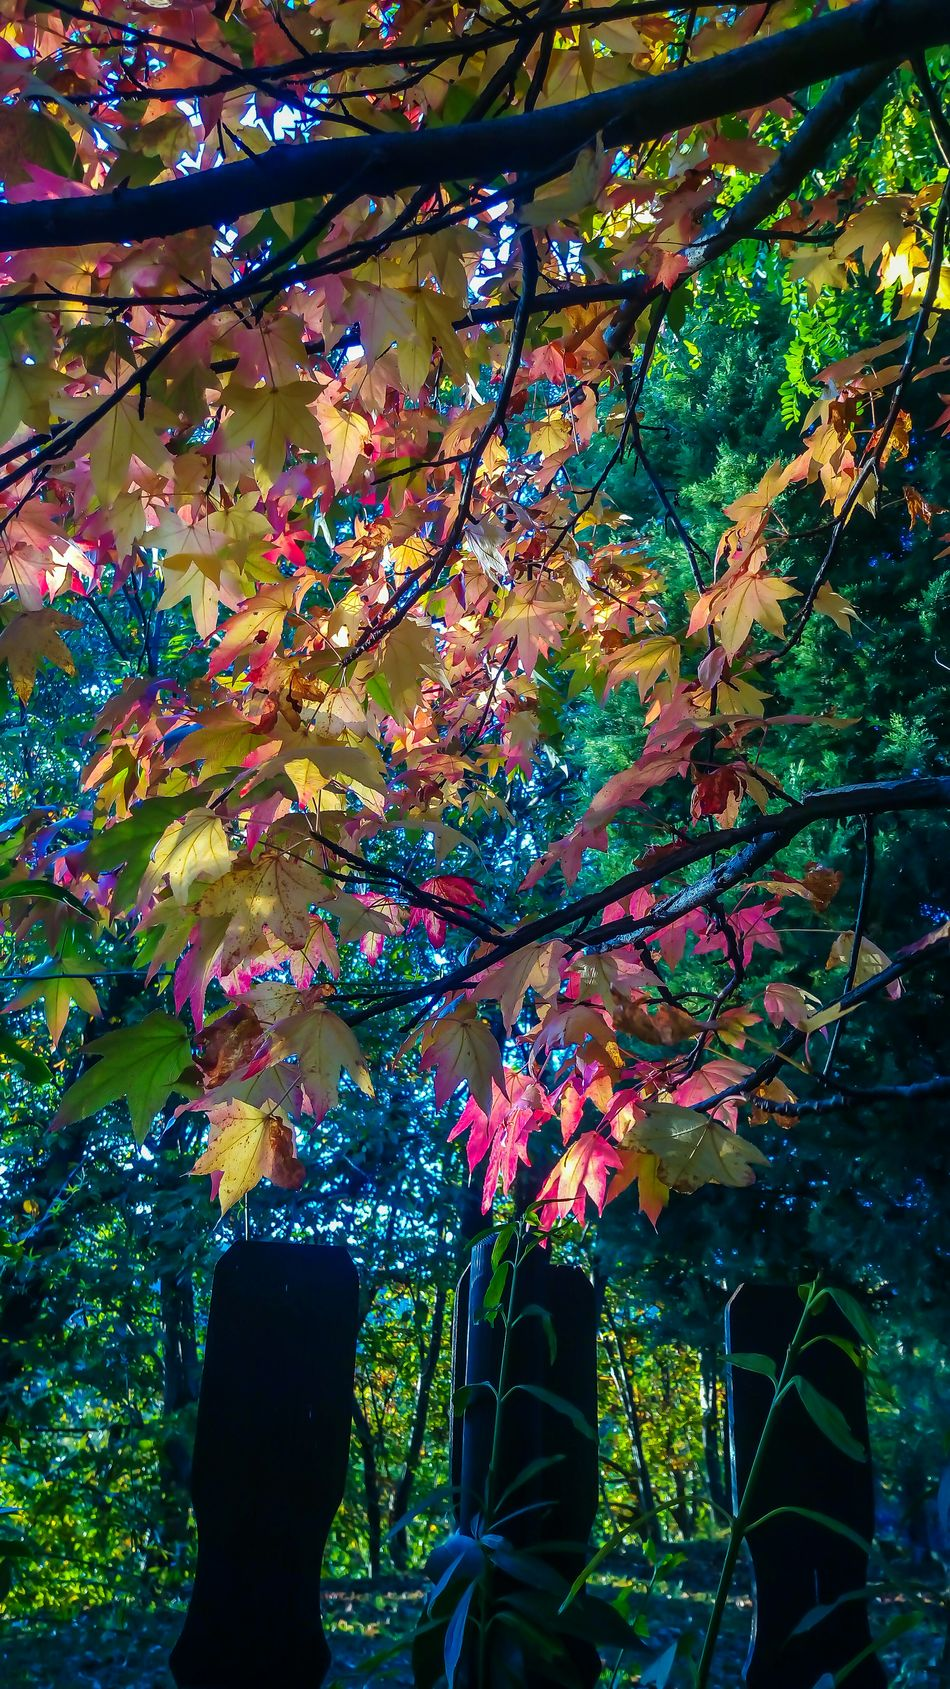 Multi Colored Tree Beauty In Nature Autumn Liquidambar Colors Color Explosion In The Wood Countrystyle Countryhouse Athomeinthewood Athomeinthemountains StonexOneGalileo Garden Photography At Home Sweet Home Mygardentoday Autumn Colors Autumn Orange Color Beauty In Nature Tree